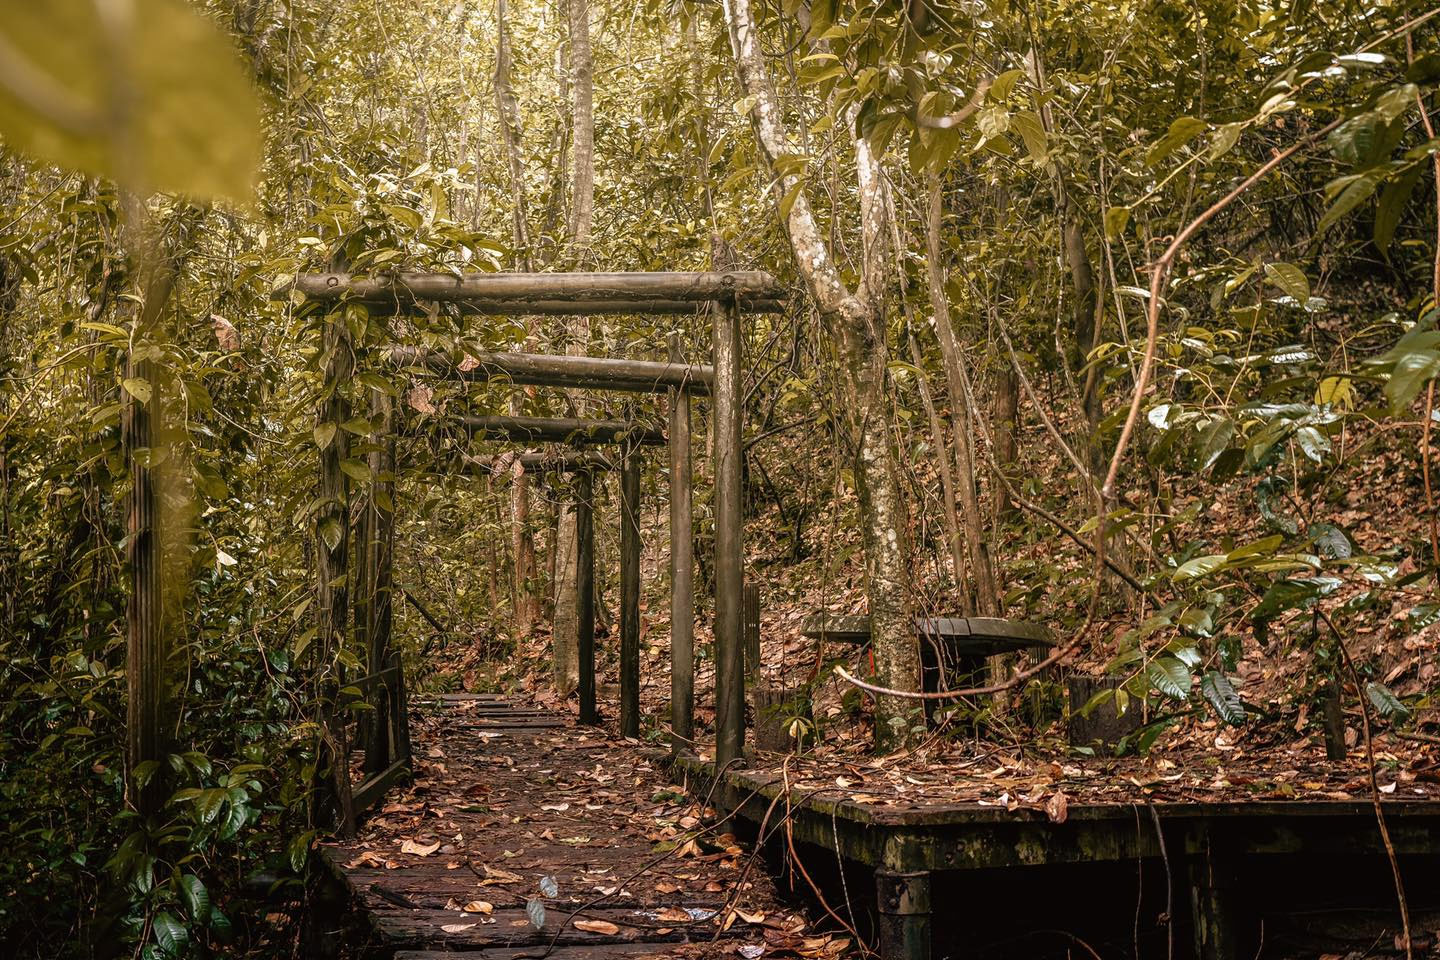 Abandoned park in Bukit Batok contains Torii gates structure, disused well & sheltered hut - Mothership.SG - News from Singapore, Asia and around the world